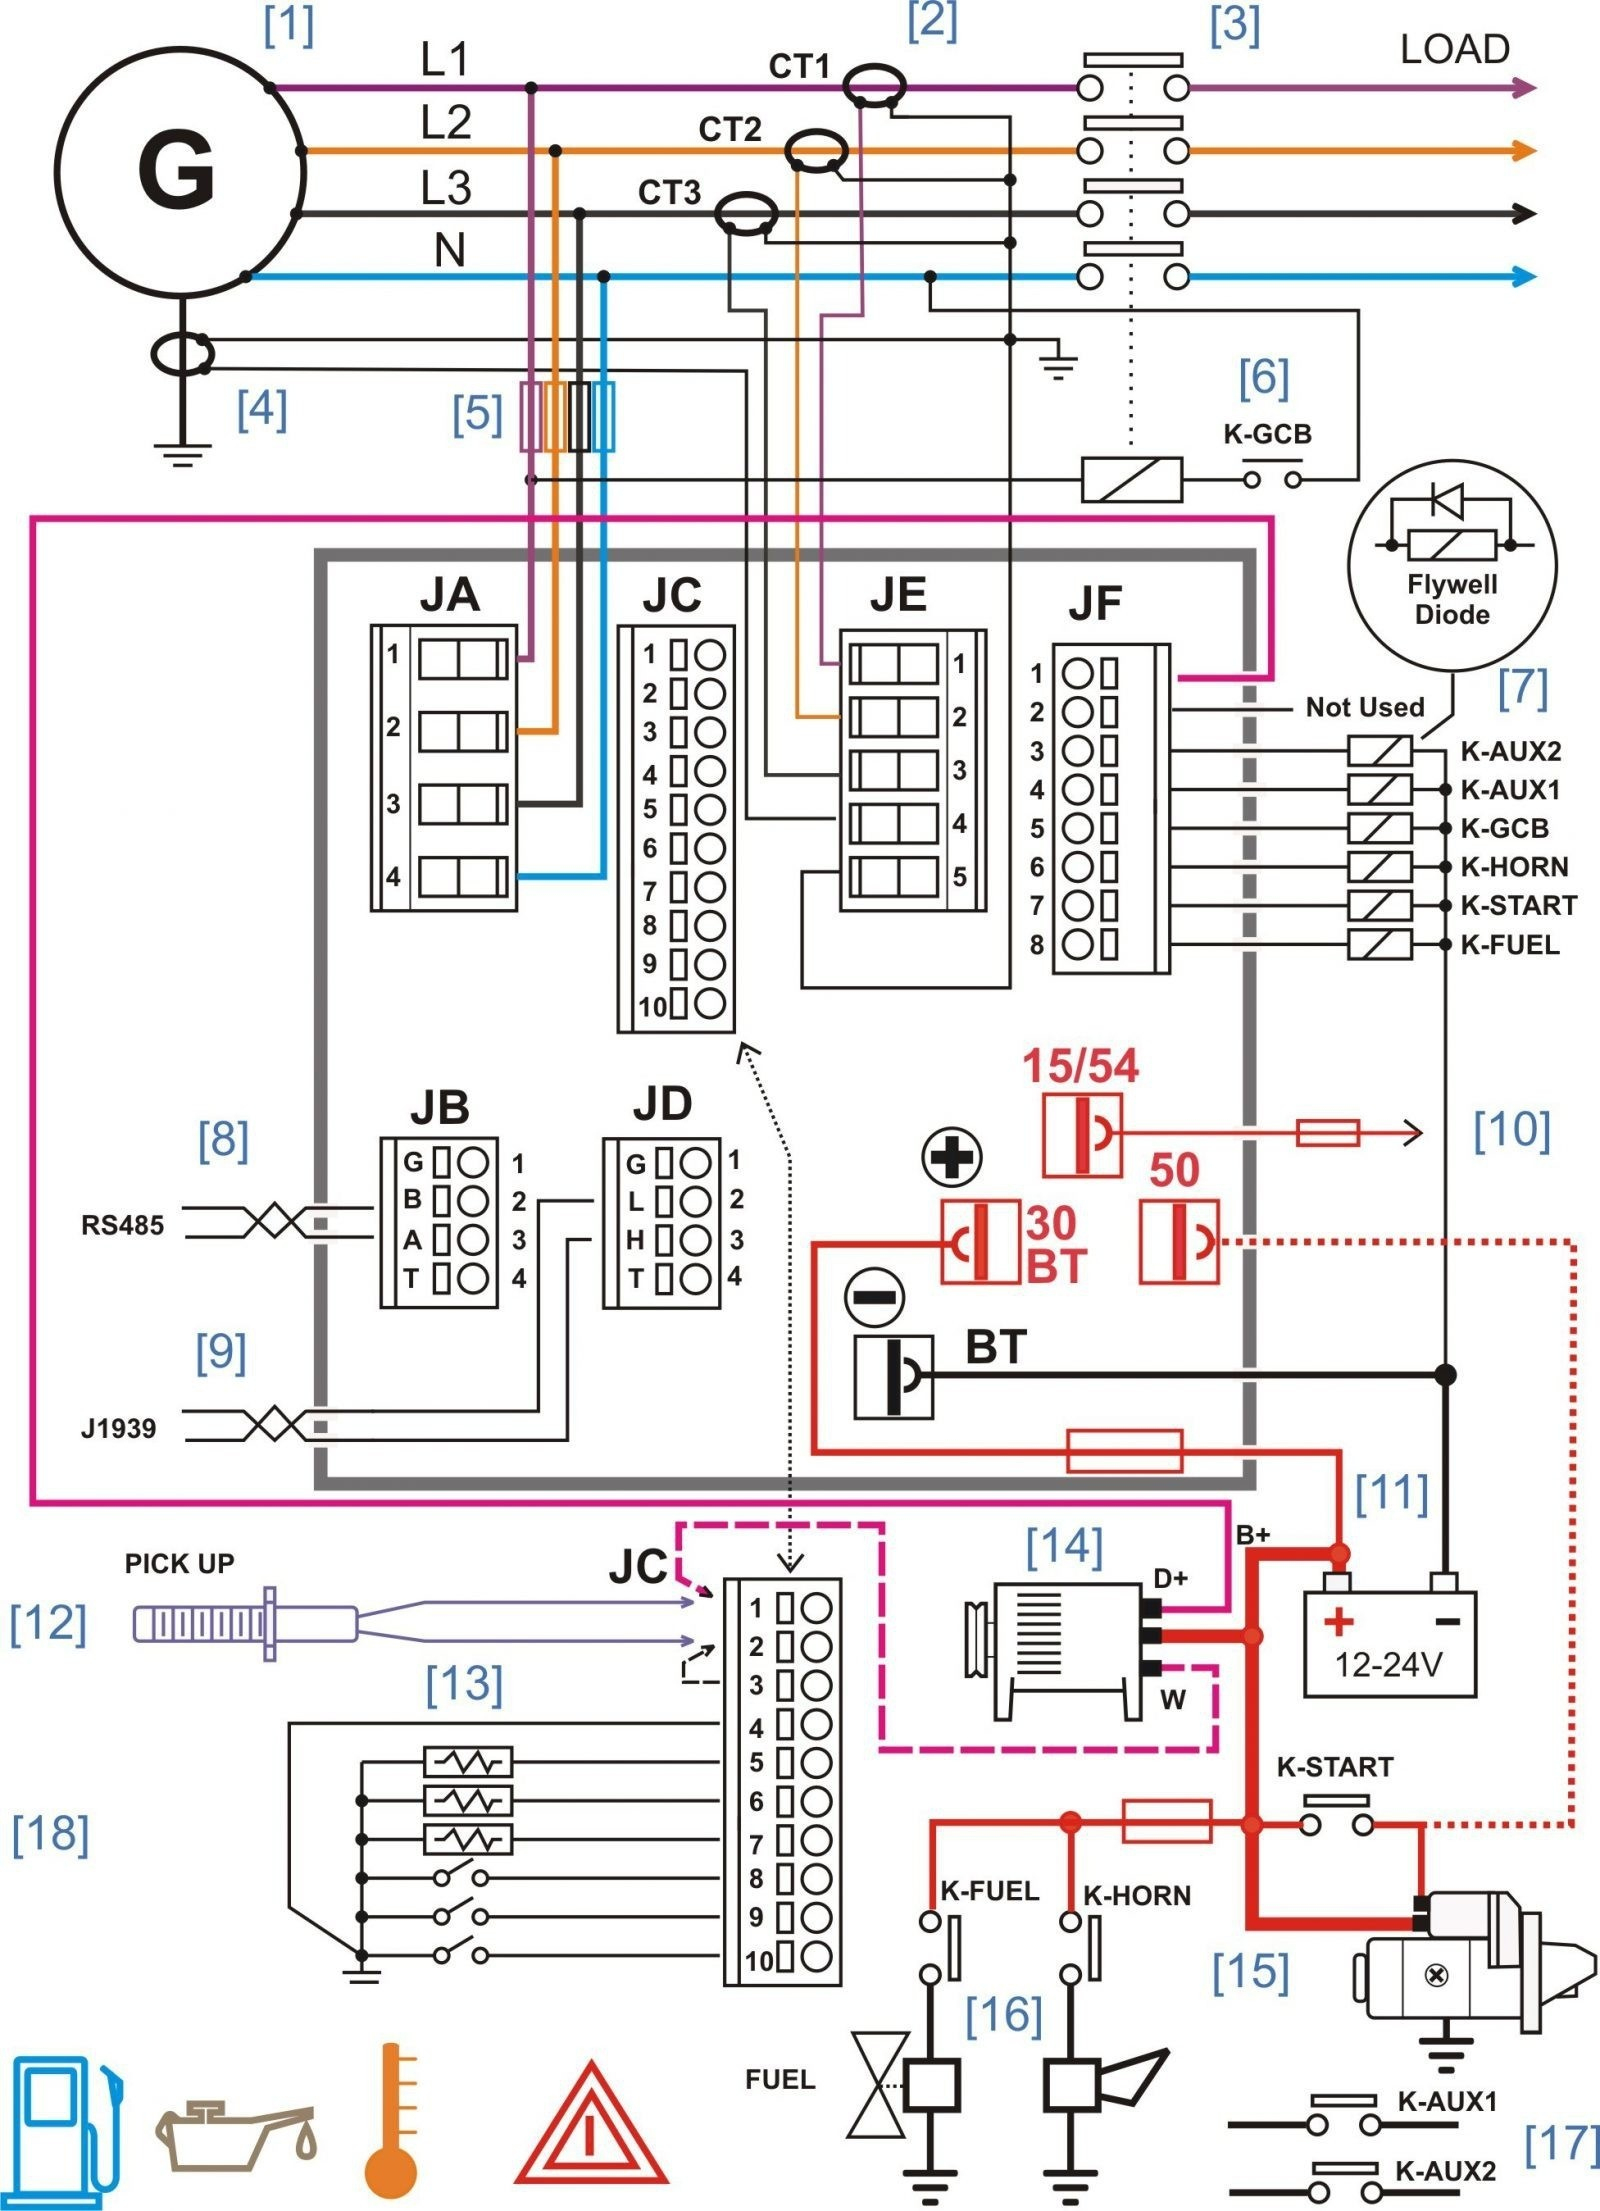 Viva 50Cc Wiring Diagram | Wiring Diagram - Gatormade Trailer Wiring Diagram